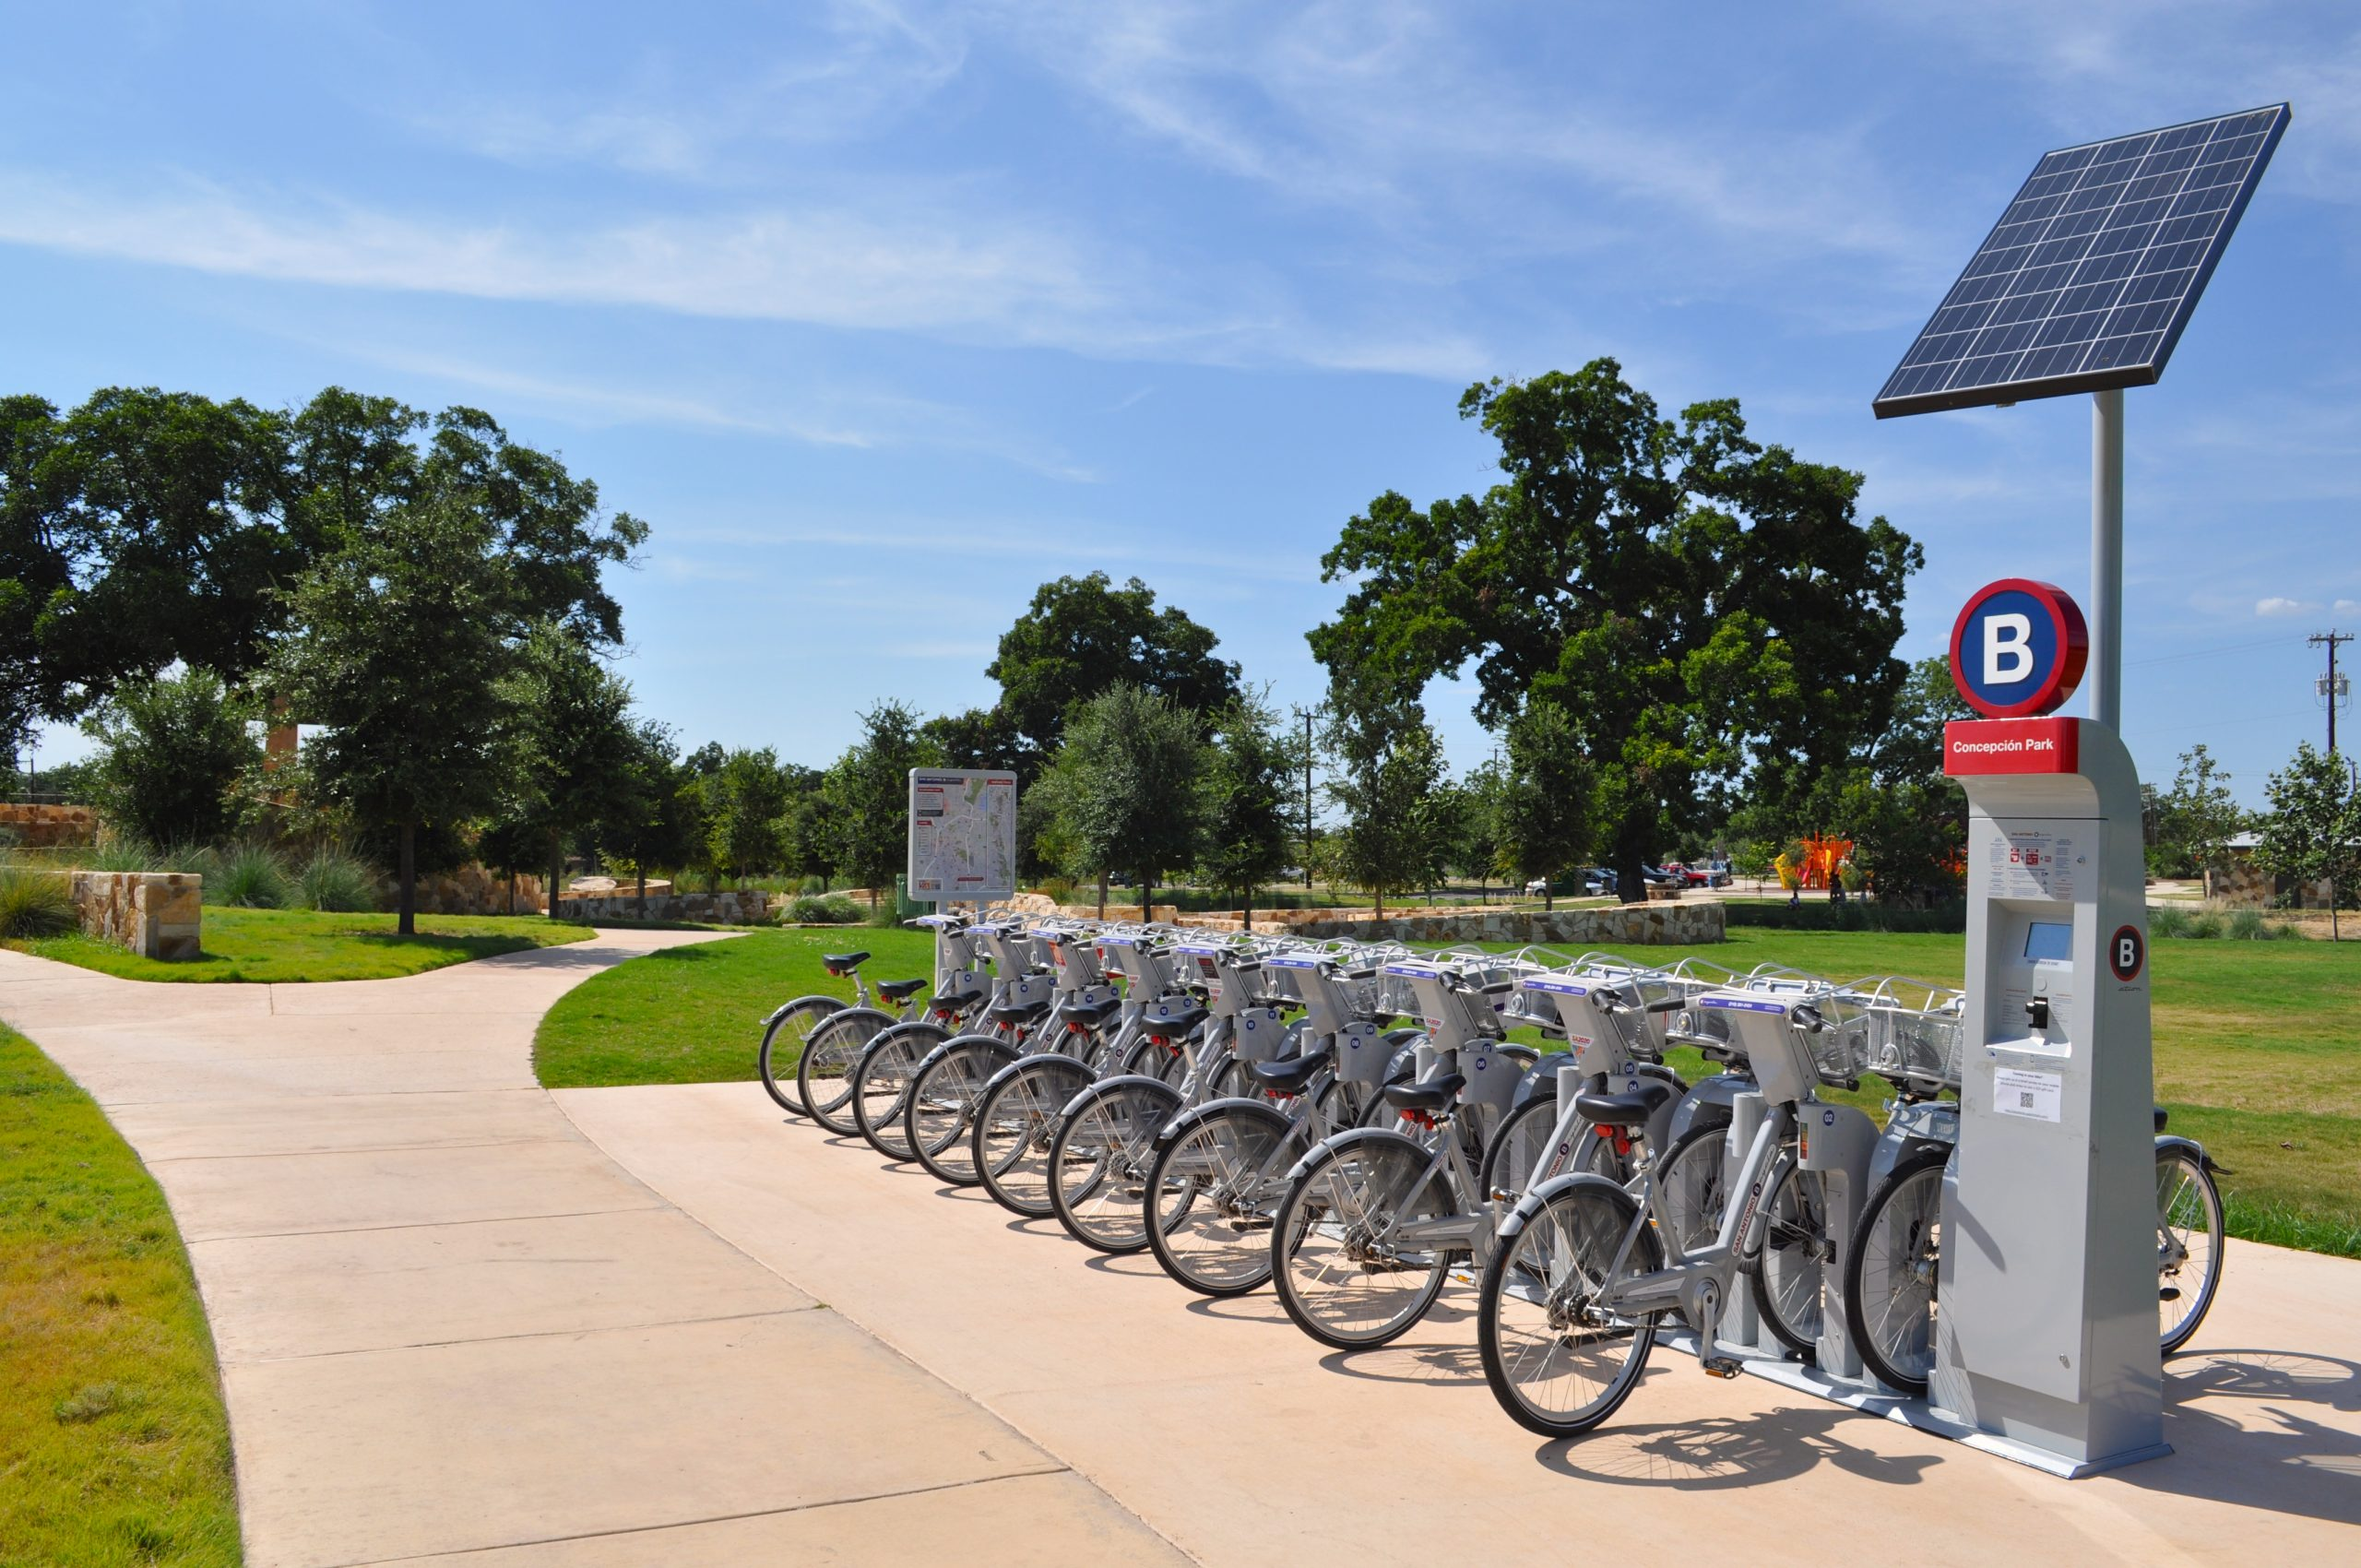 Concepción Park's b-cycle rack – soaking up solar energy, ready for business. Photo by Iris Dimmick.